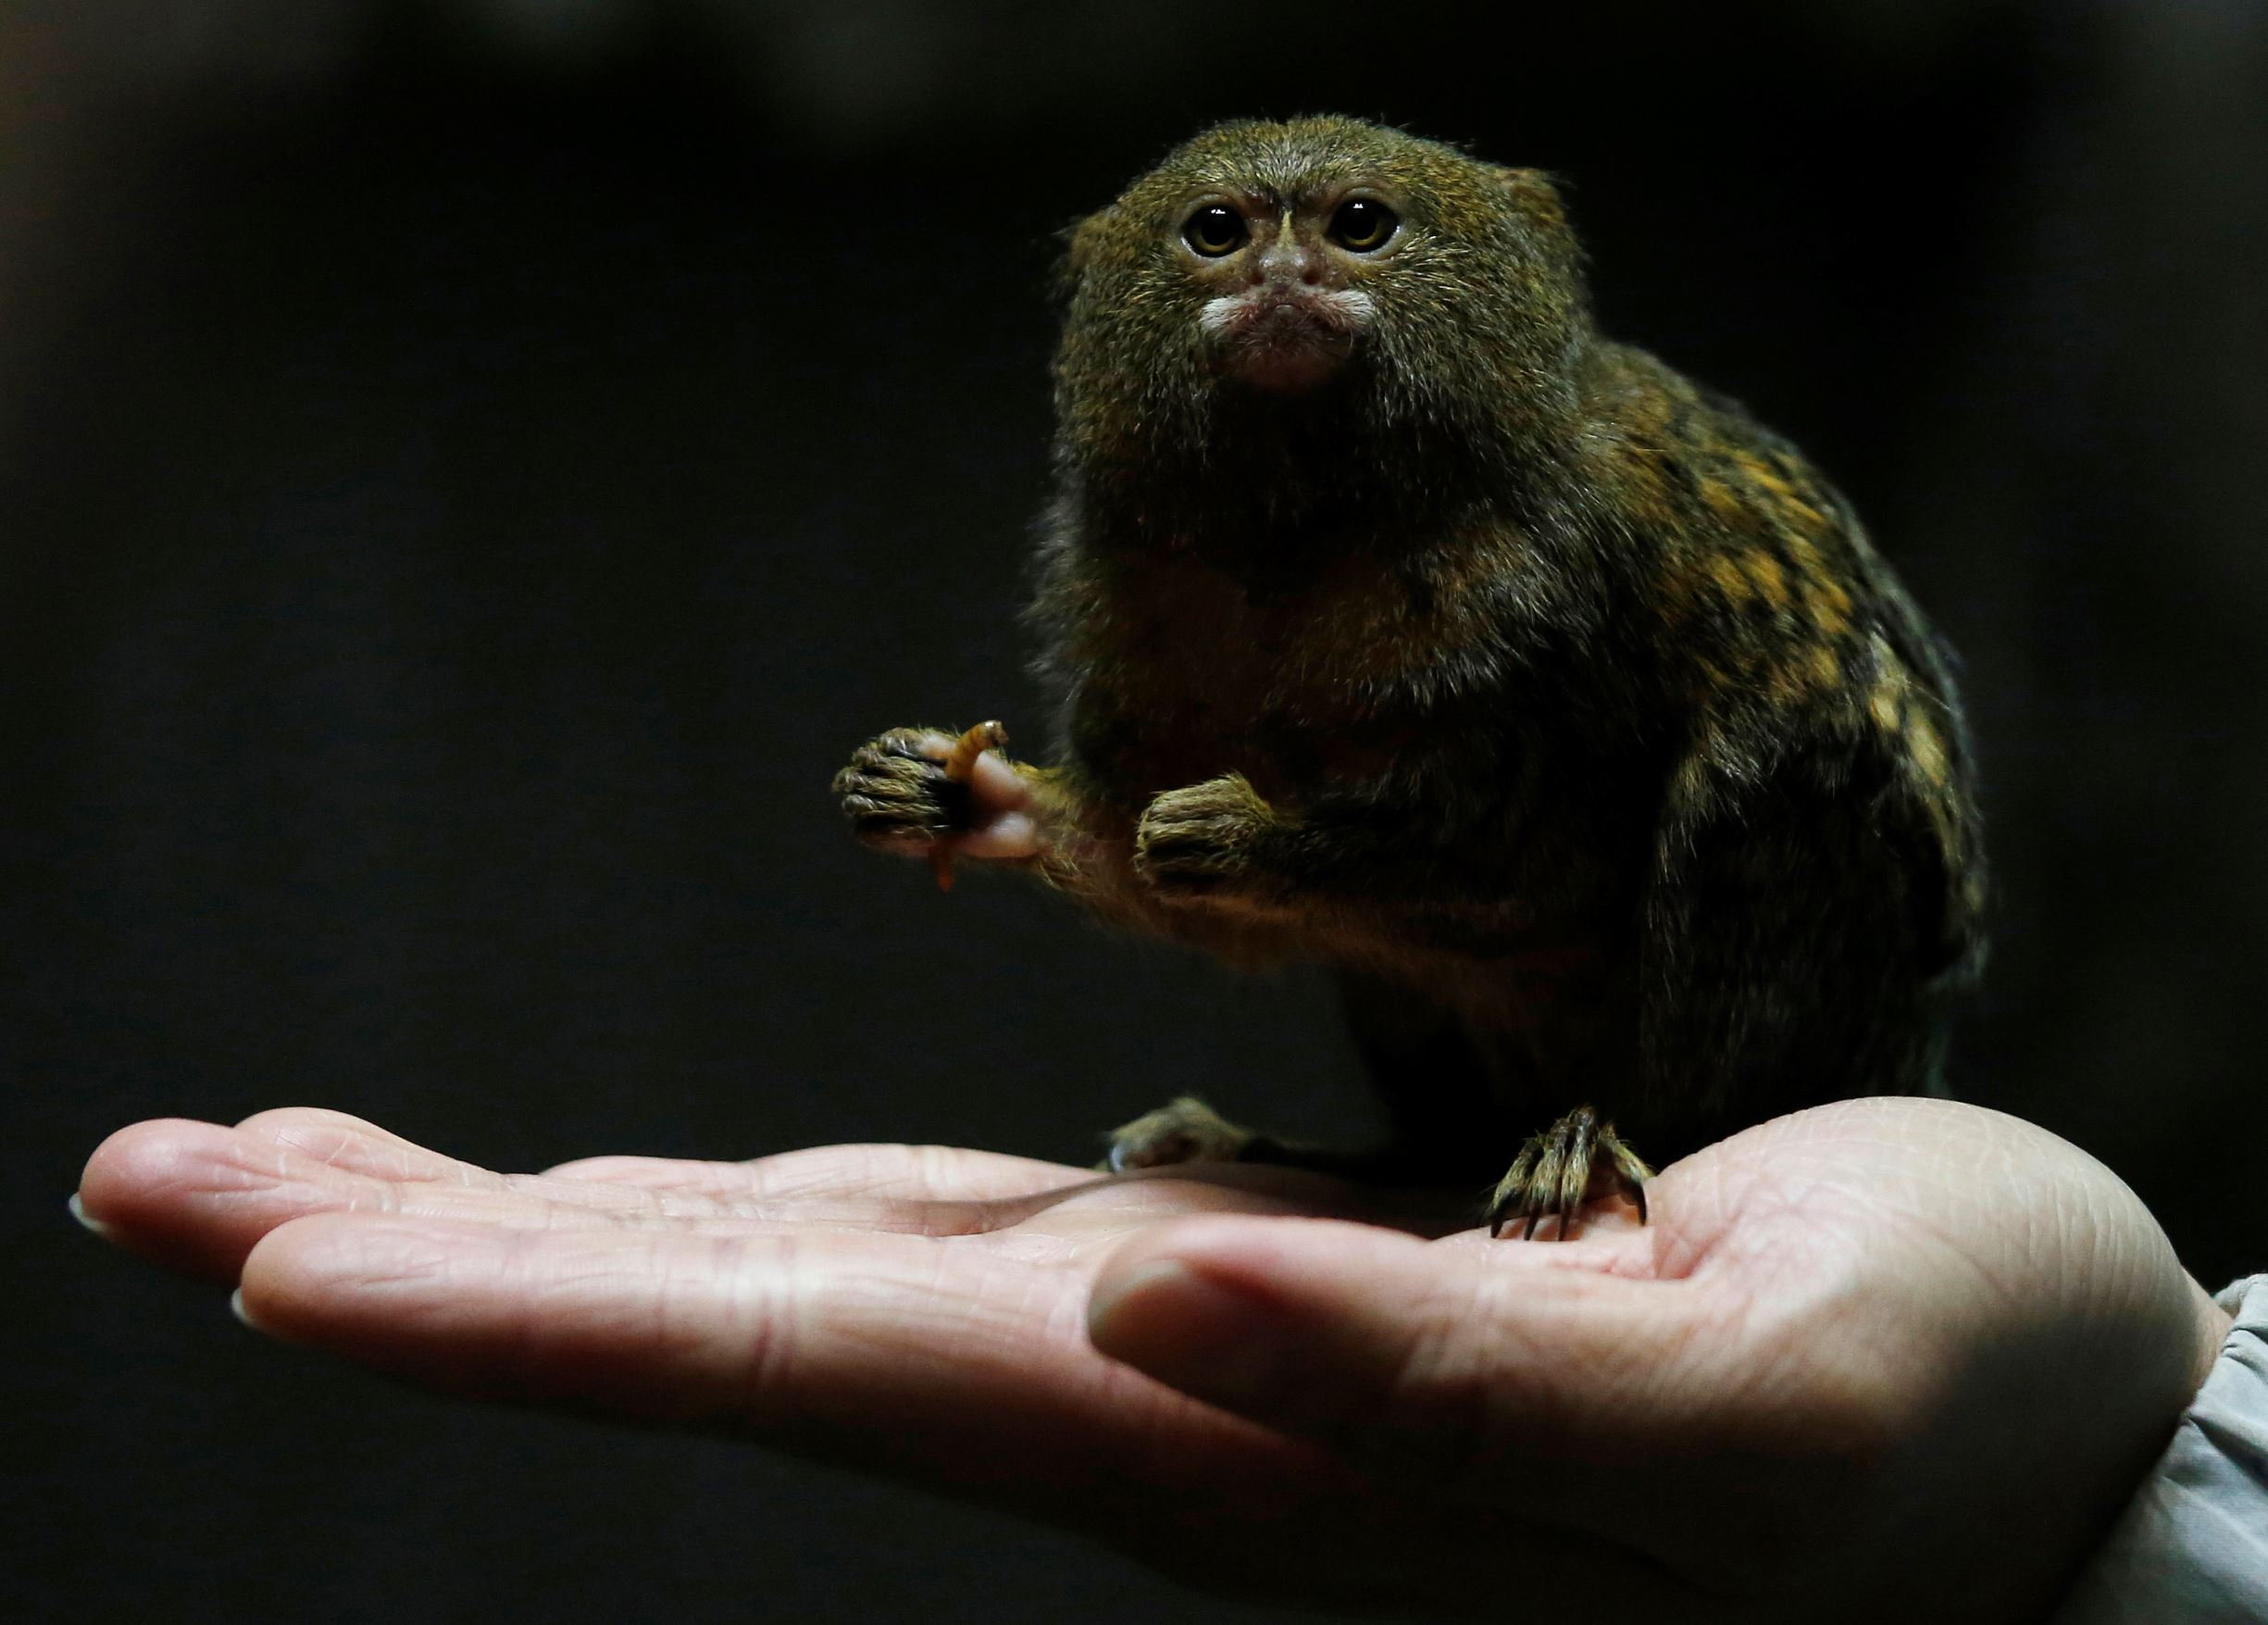 Слайд 62 из 67: Hong Kong Ocean Park worker poses with a pygmy marmoset, the world's smallest monkey, in Hong Kong, China February 2, 2016. The Chinese New Year of the Monkey falls on February 8, 2016.